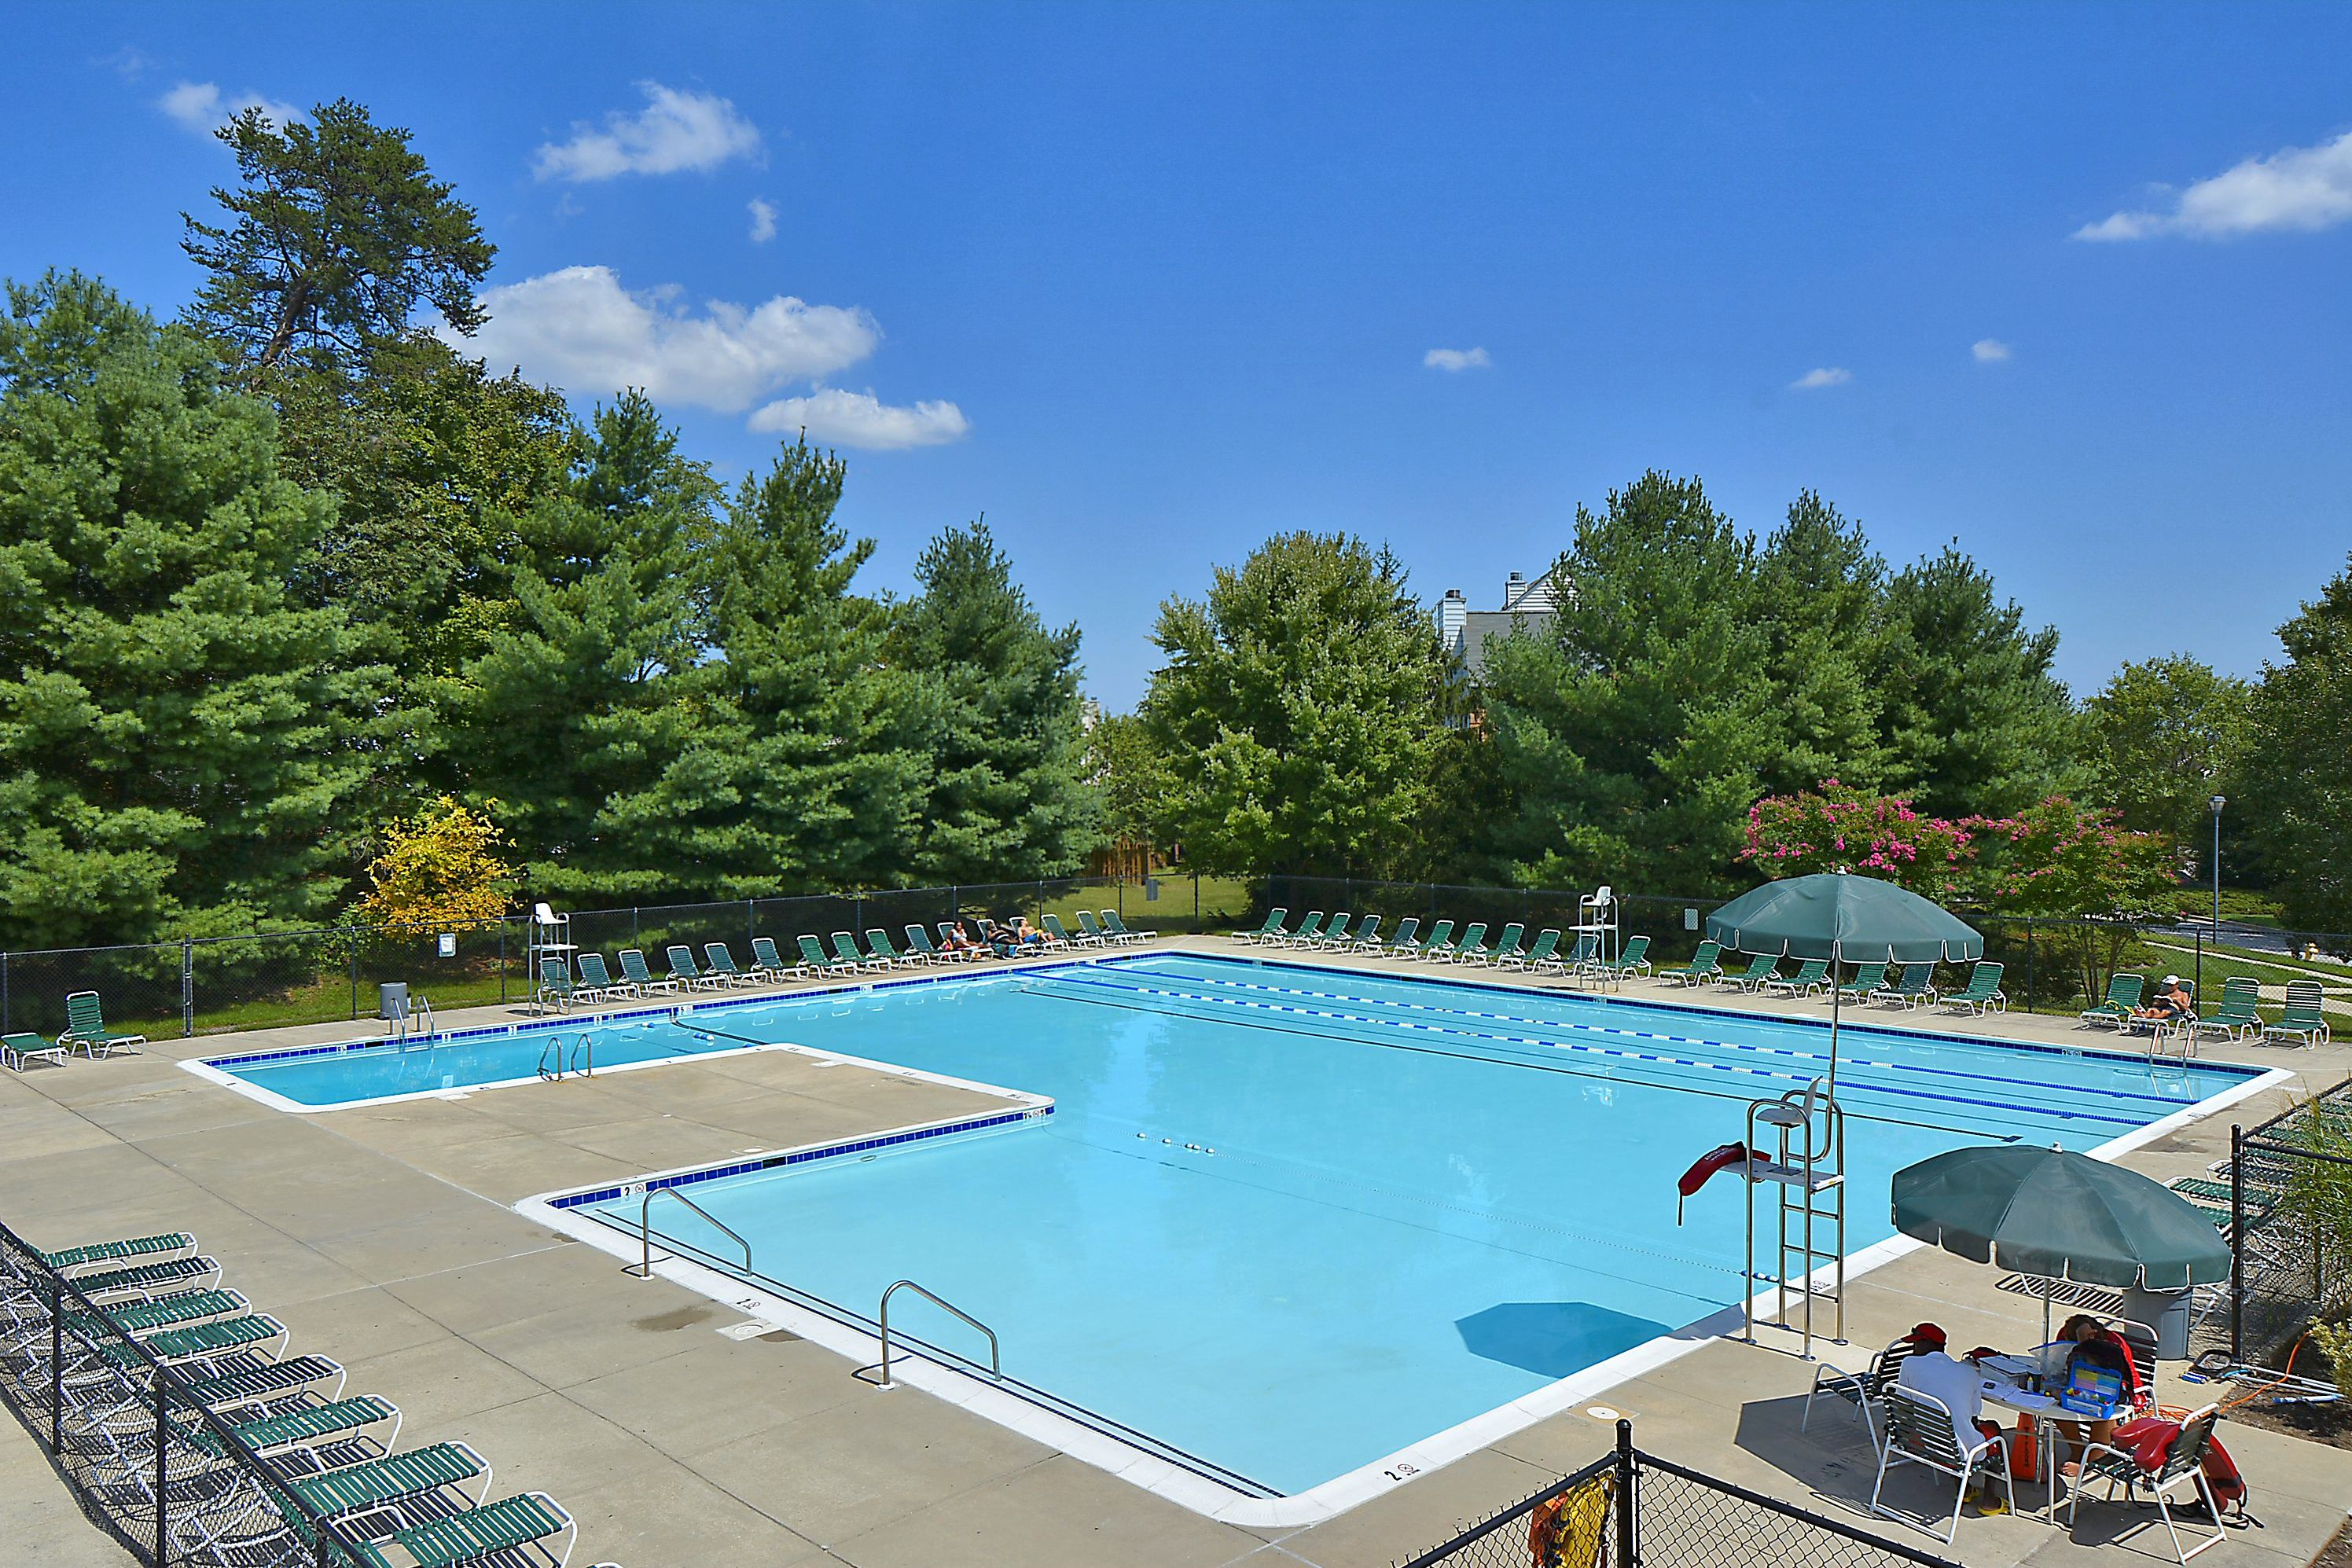 Seven Oaks community pool